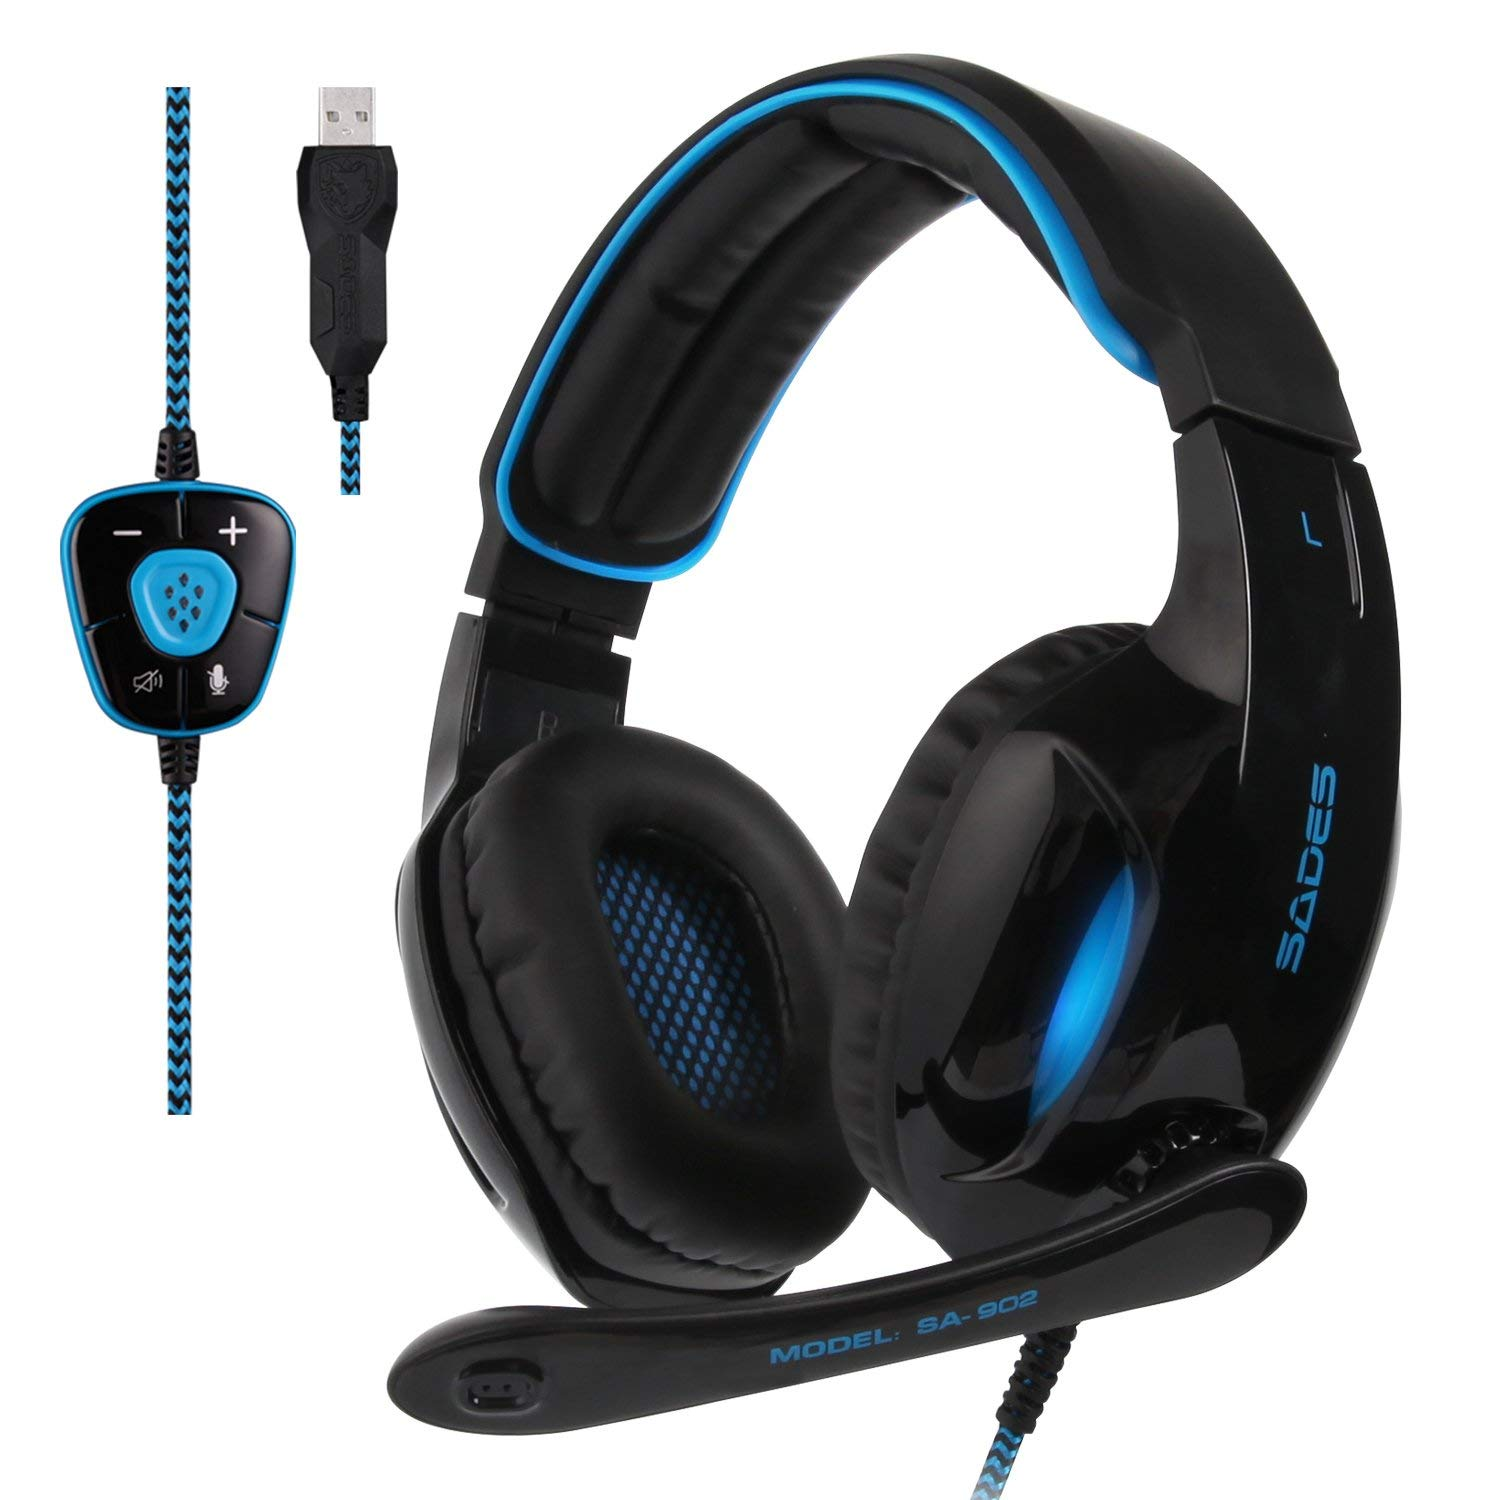 327ec1c2eb2 2017 Sades New Version SA902 Blue 7.1 Channel Virtual USB Surround Stereo  Wired PC Gaming Headset Over Ear Headphones with Microphone Revolution  Volume ...